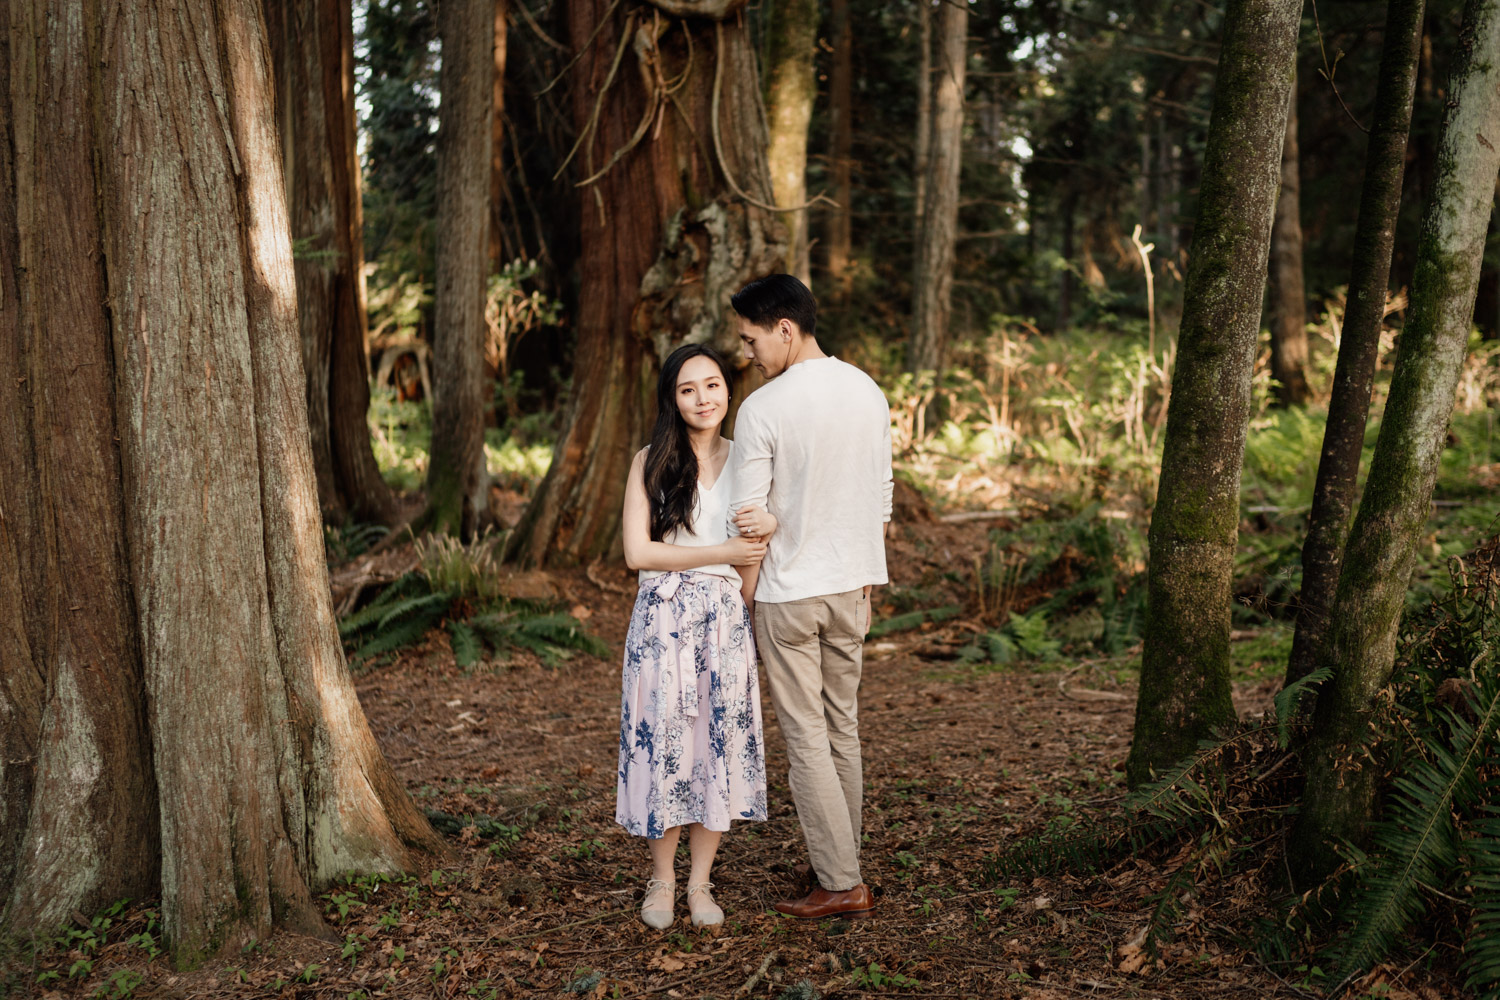 stanley park engagement photography forest prospect point vancouver bc